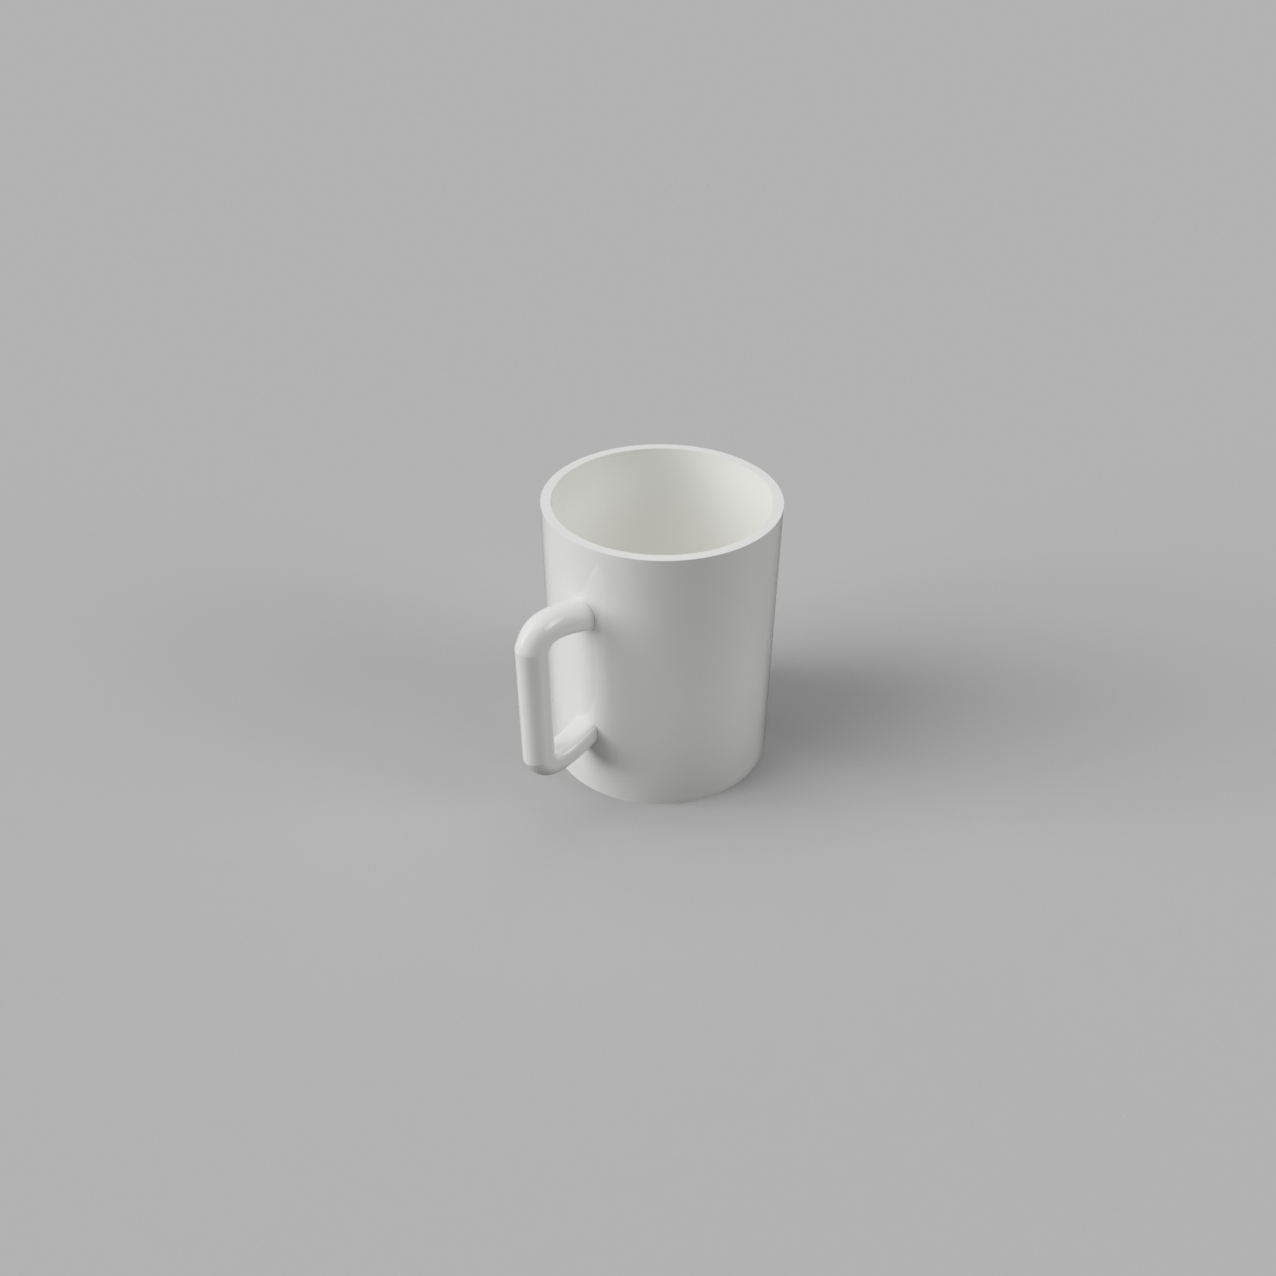 basic_mug_2017-Sep-18_11-29-28PM-000_CustomizedView41800043529.jpg